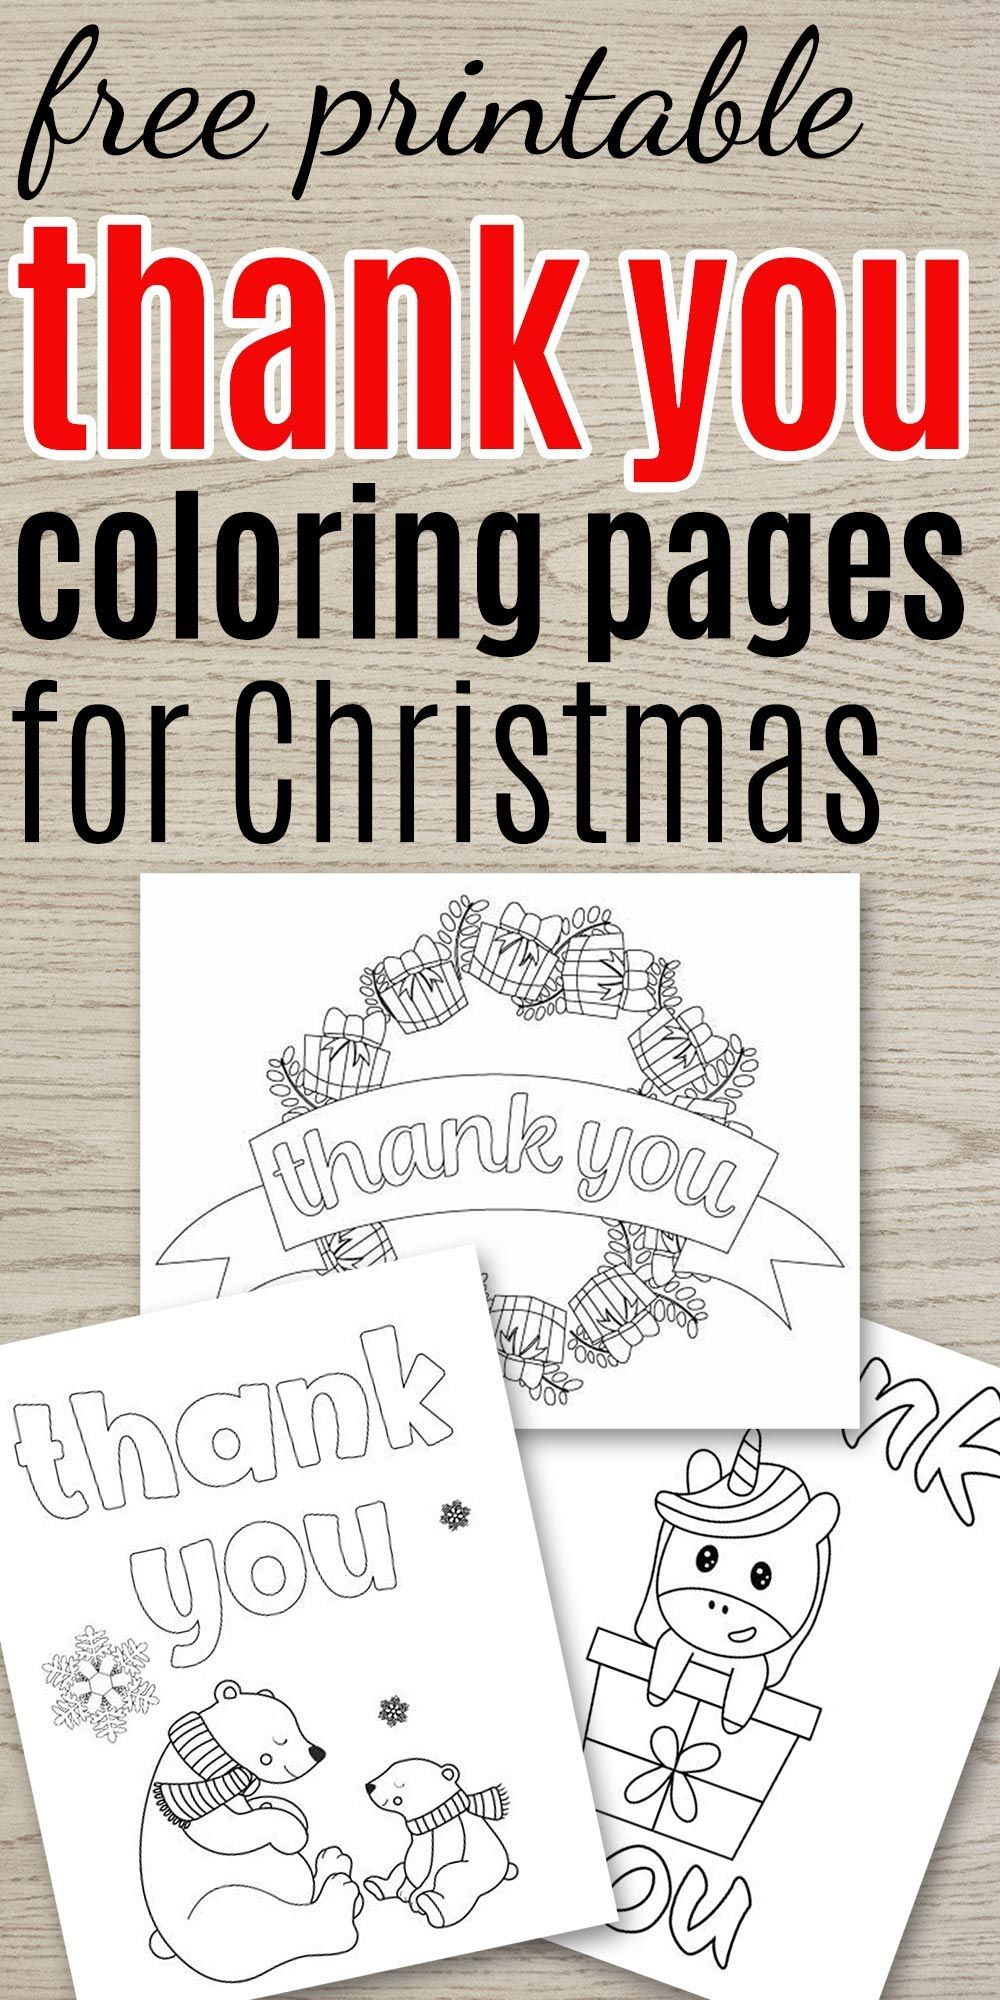 Free Printable Thank Yous For Christmas Printable Thank You Cards Christmas Coloring Pages Printable Coloring Pages